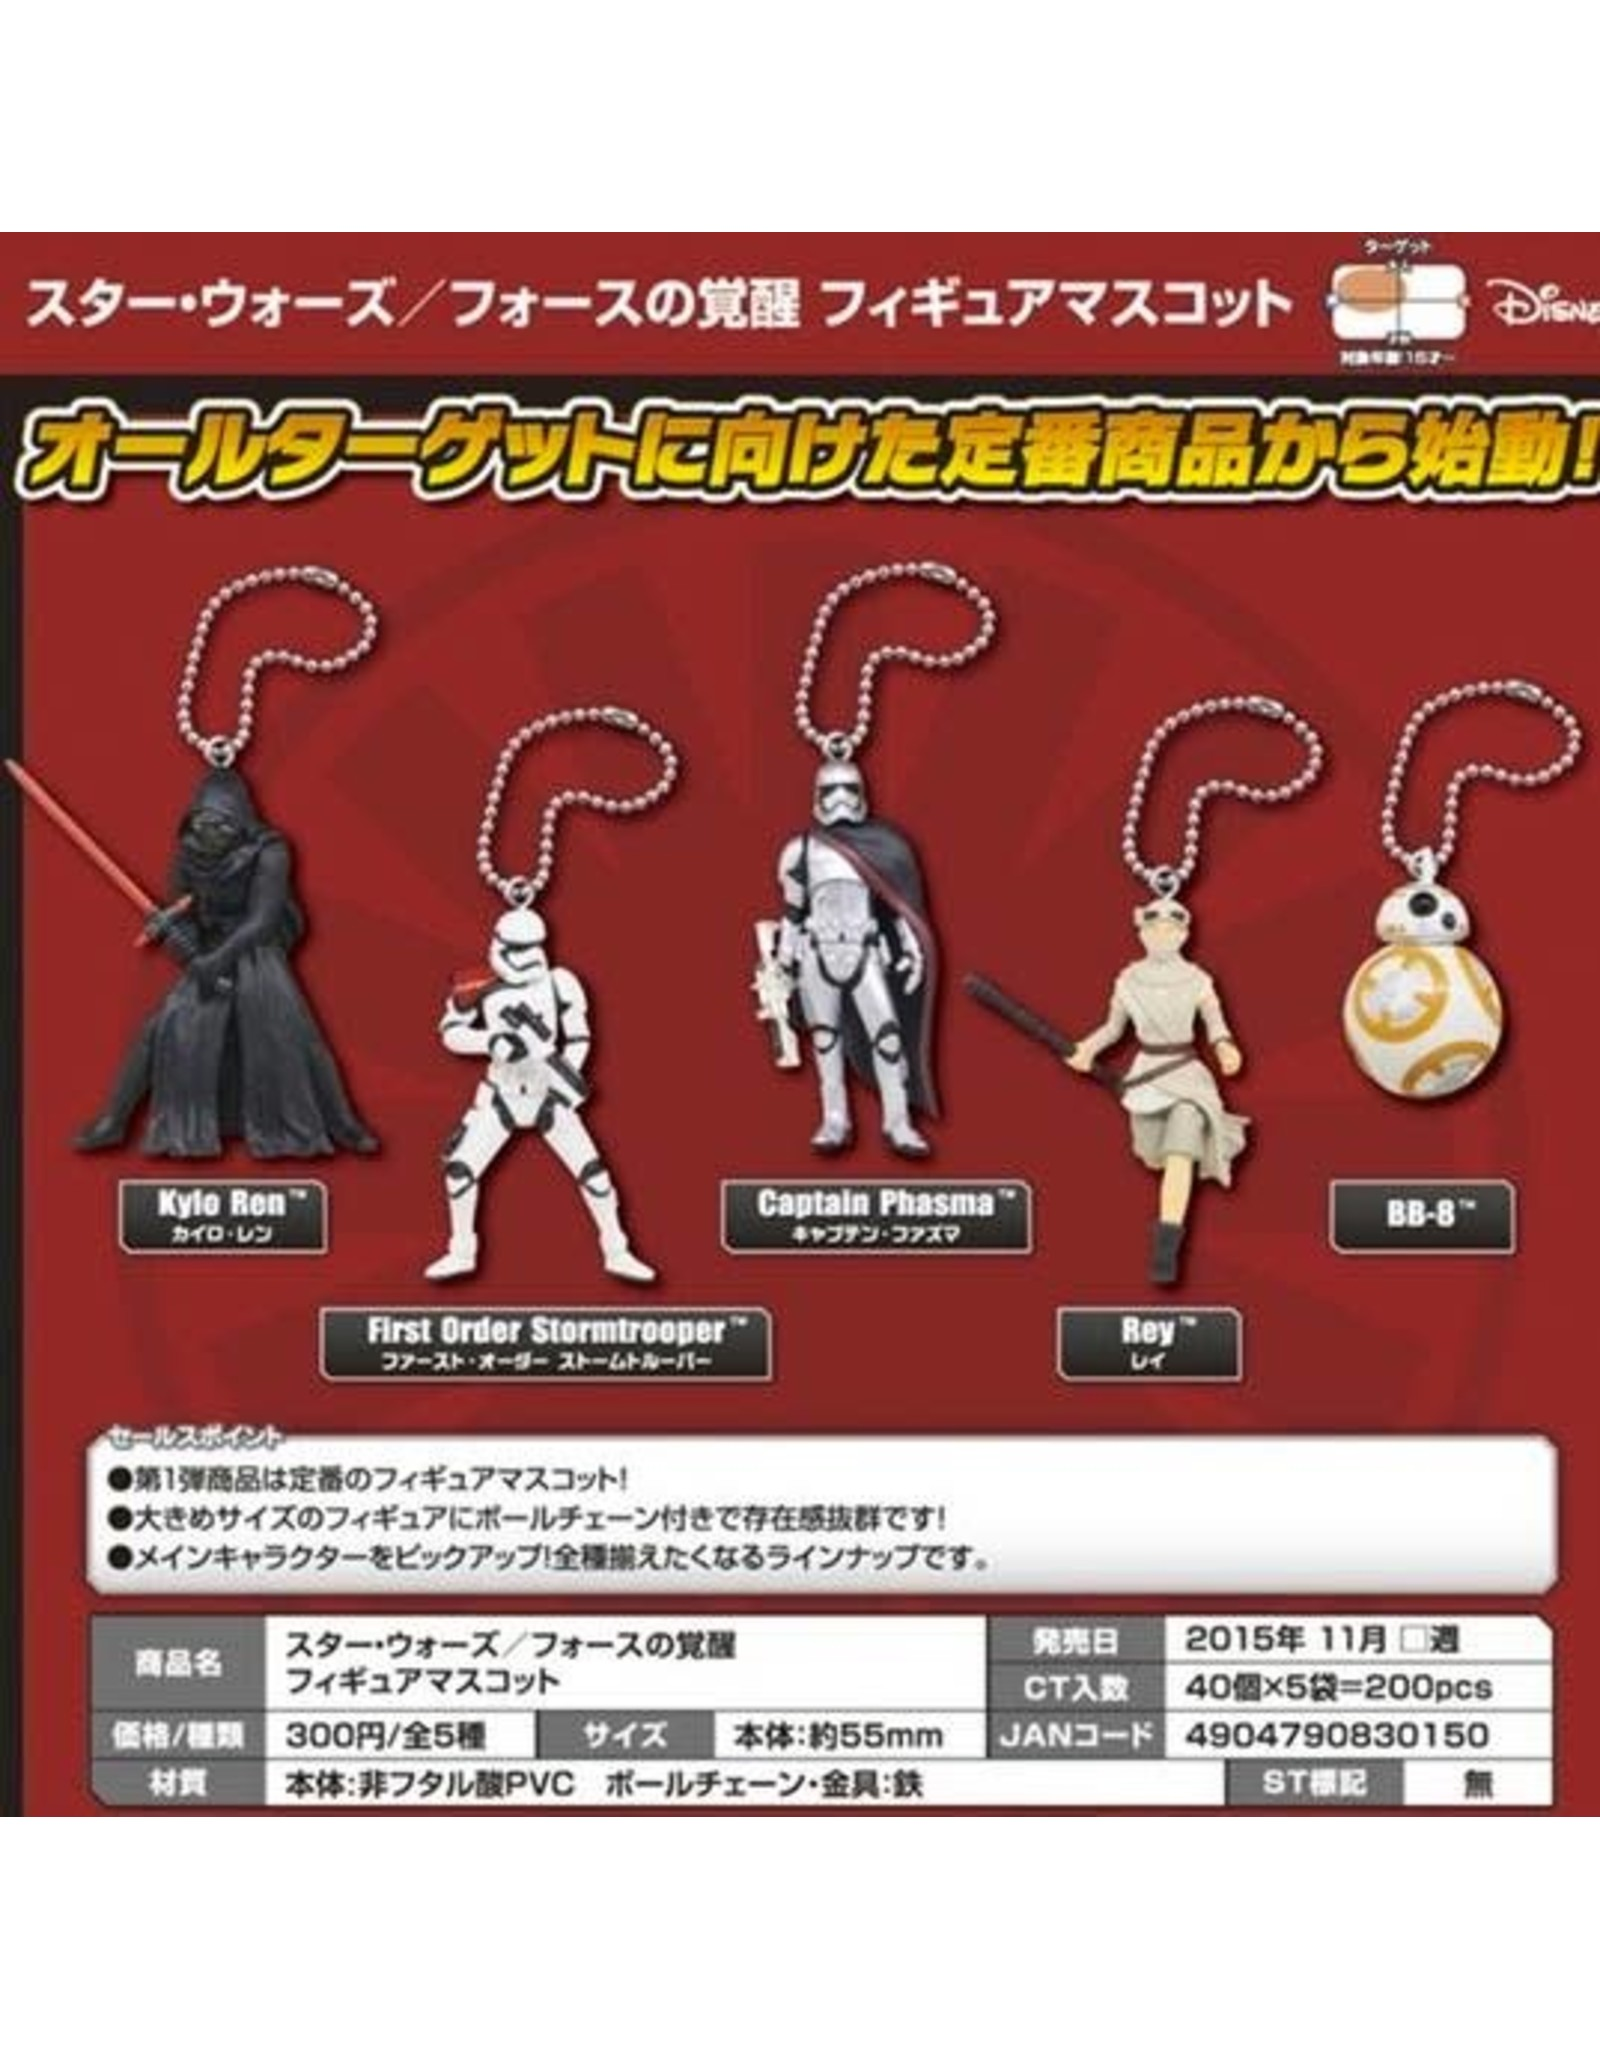 Bandai STAR WARS PVC Figure Keychain (Assorted 1pc) - Episode 7